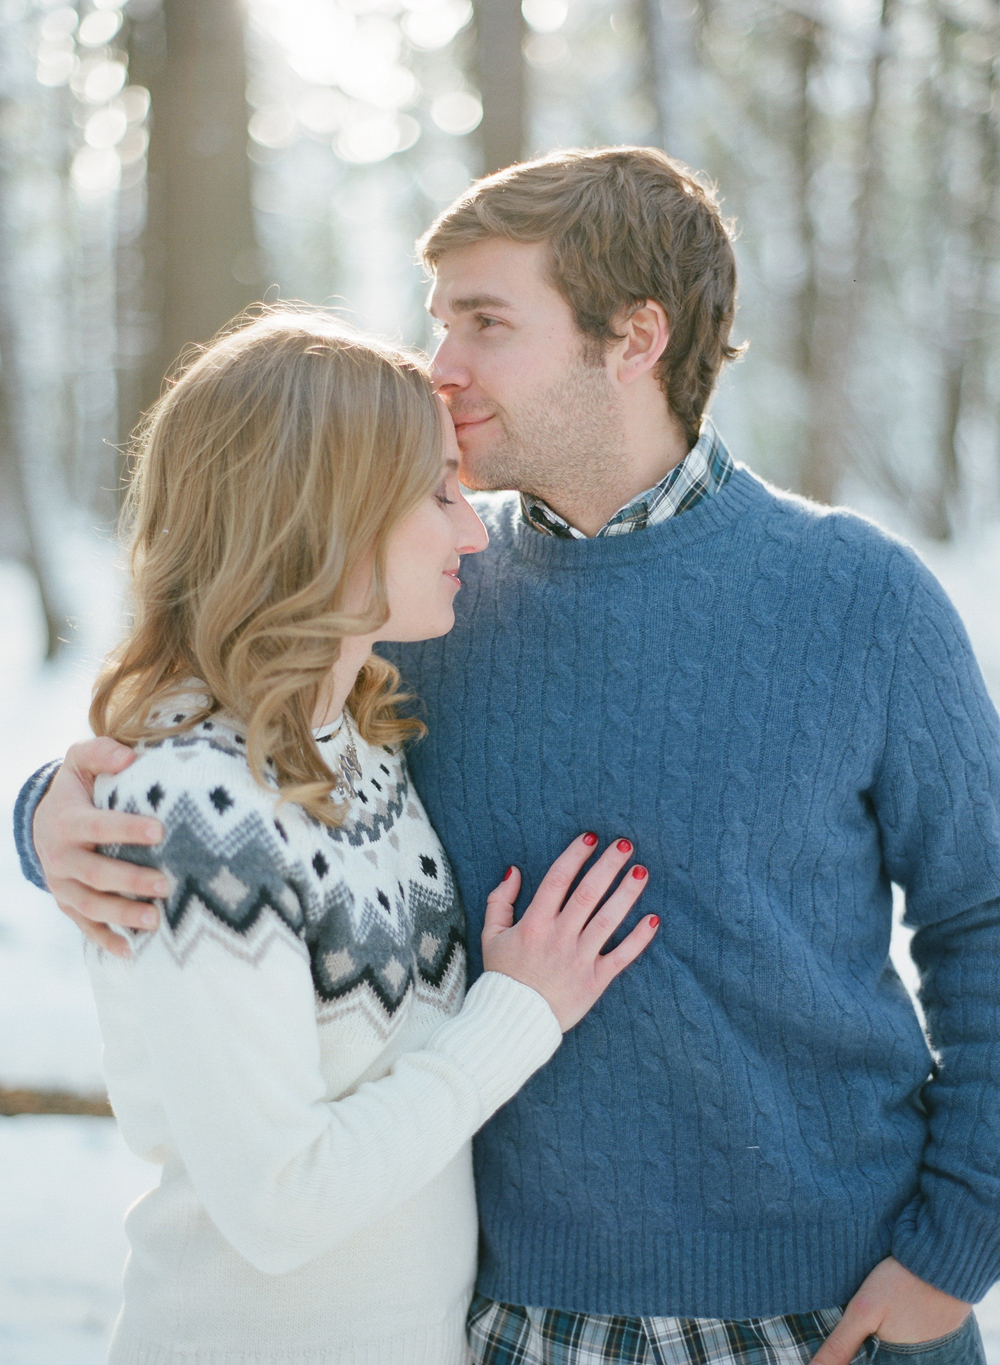 winter-engagement-photos-wausau-004.jpg